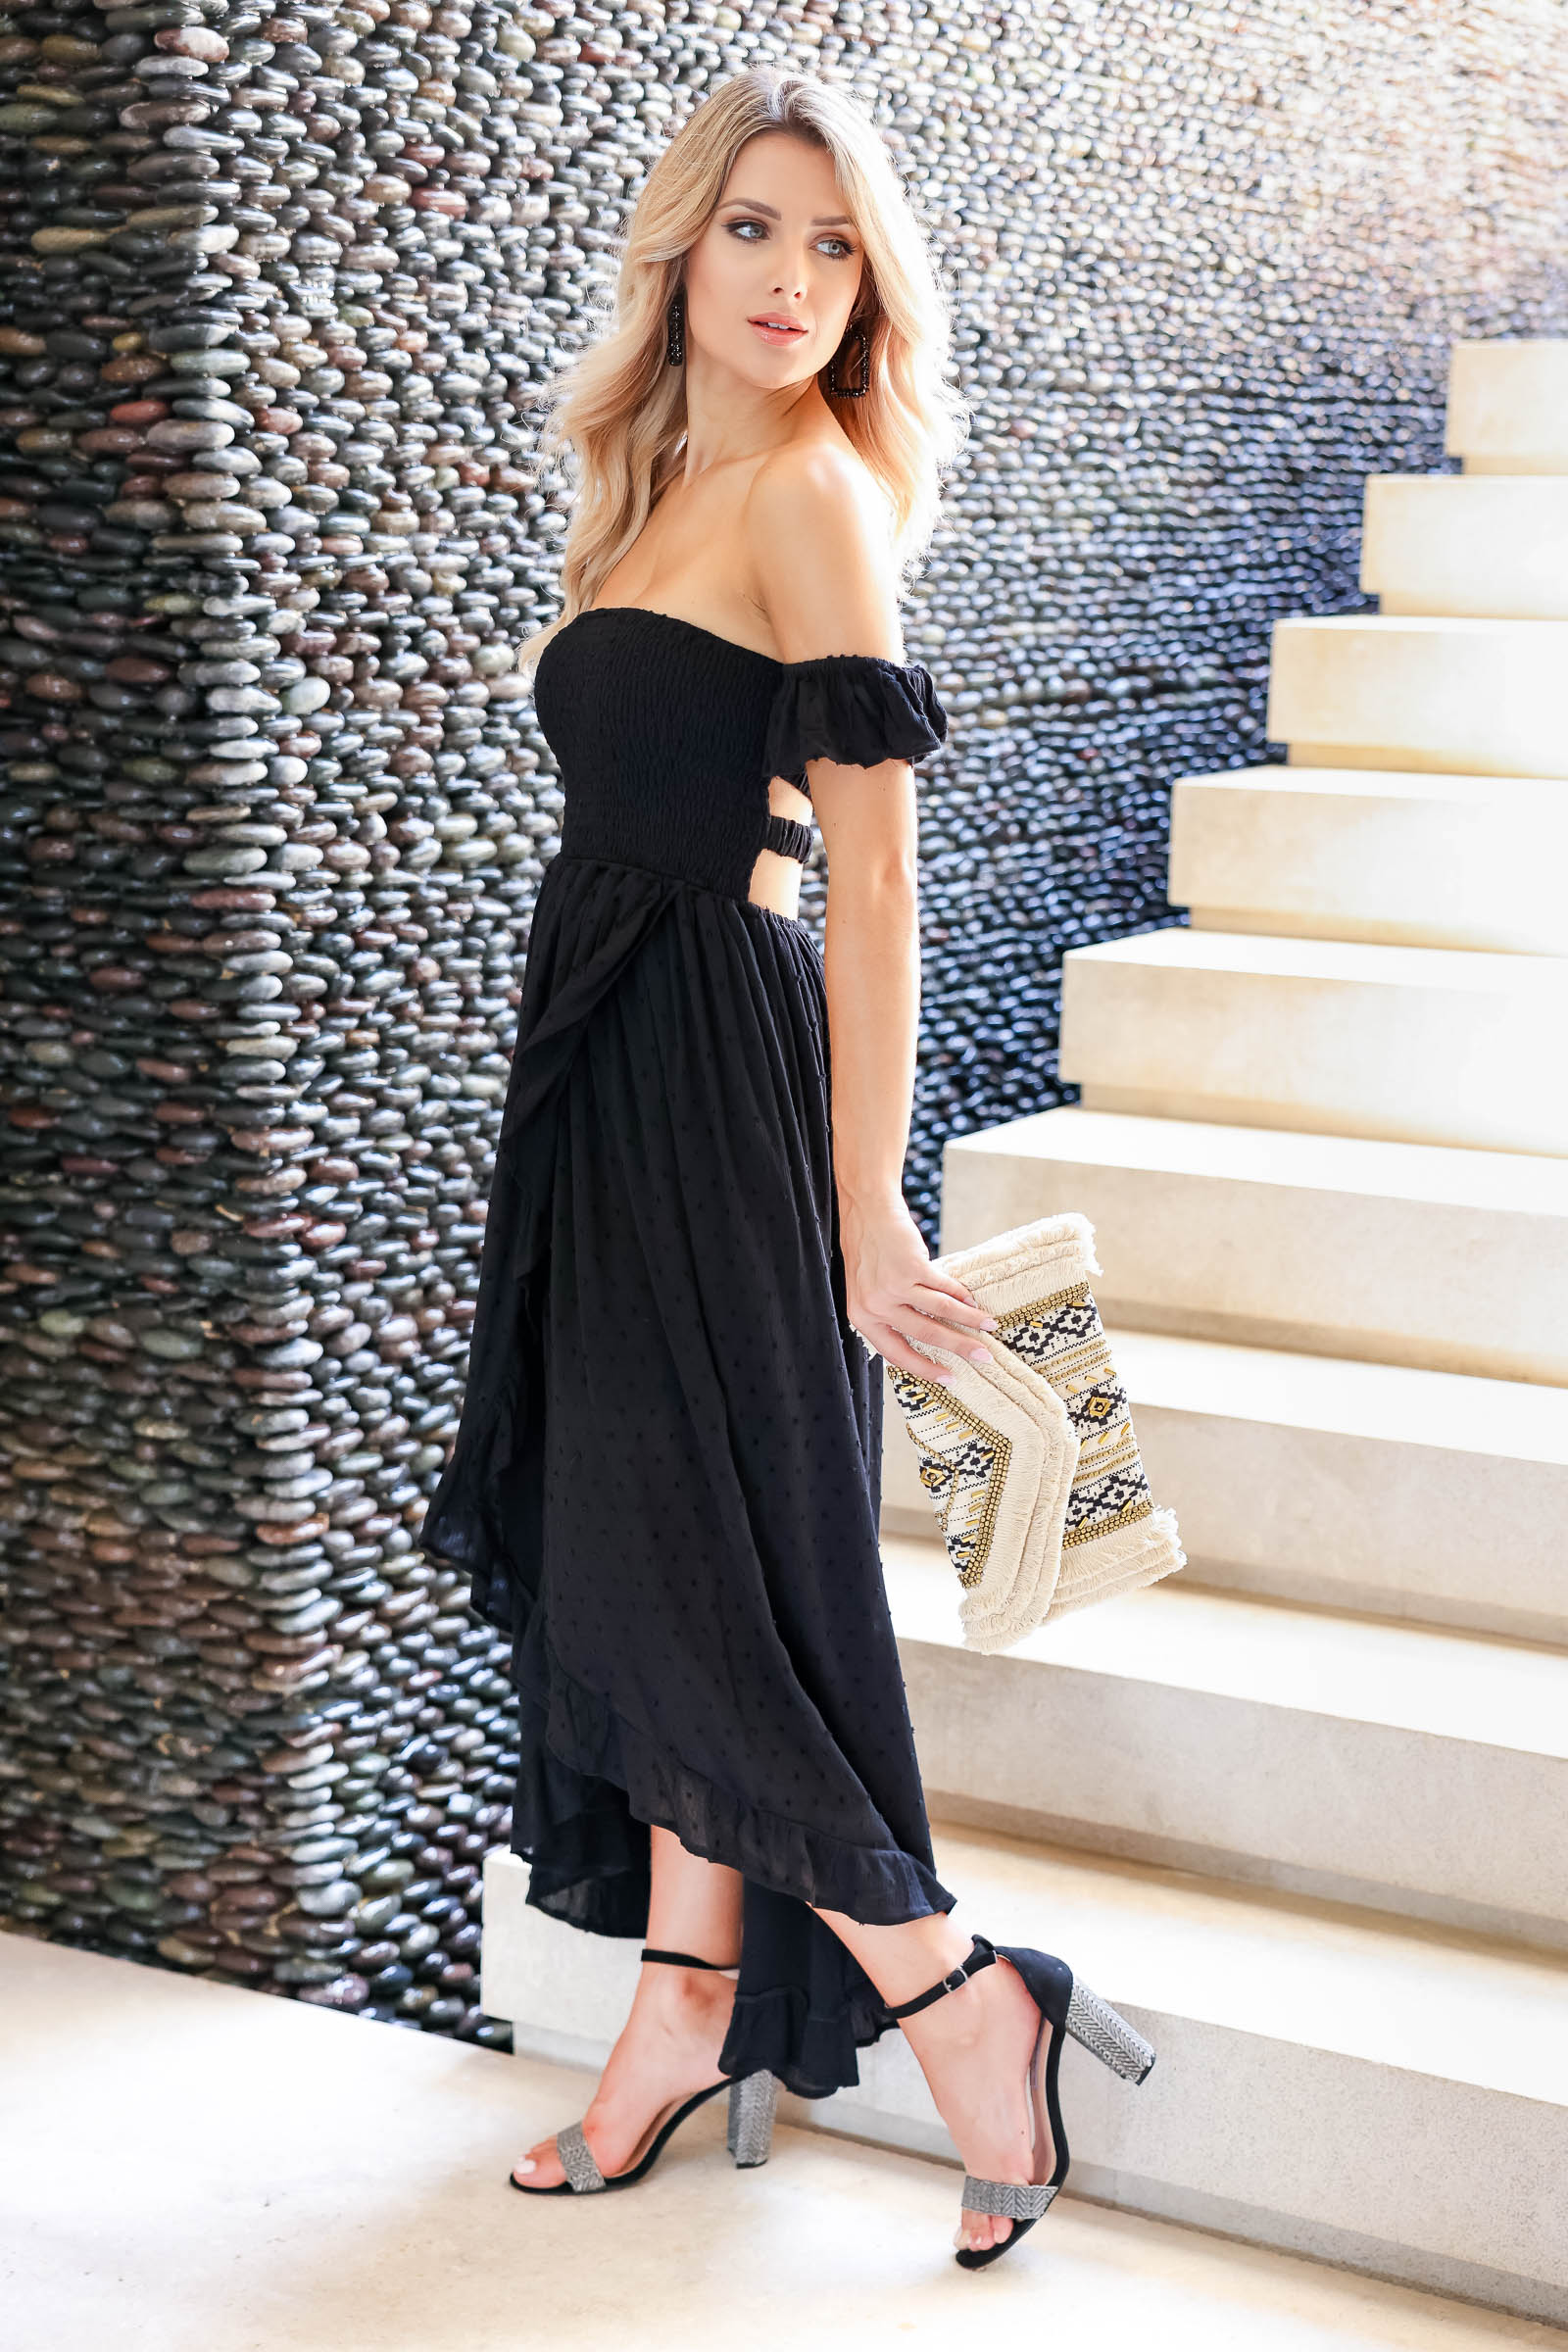 CBRAND Spring Into Style Maxi Dress - Black closet candy women's trendy textured high low off the shoulder maxi dress side